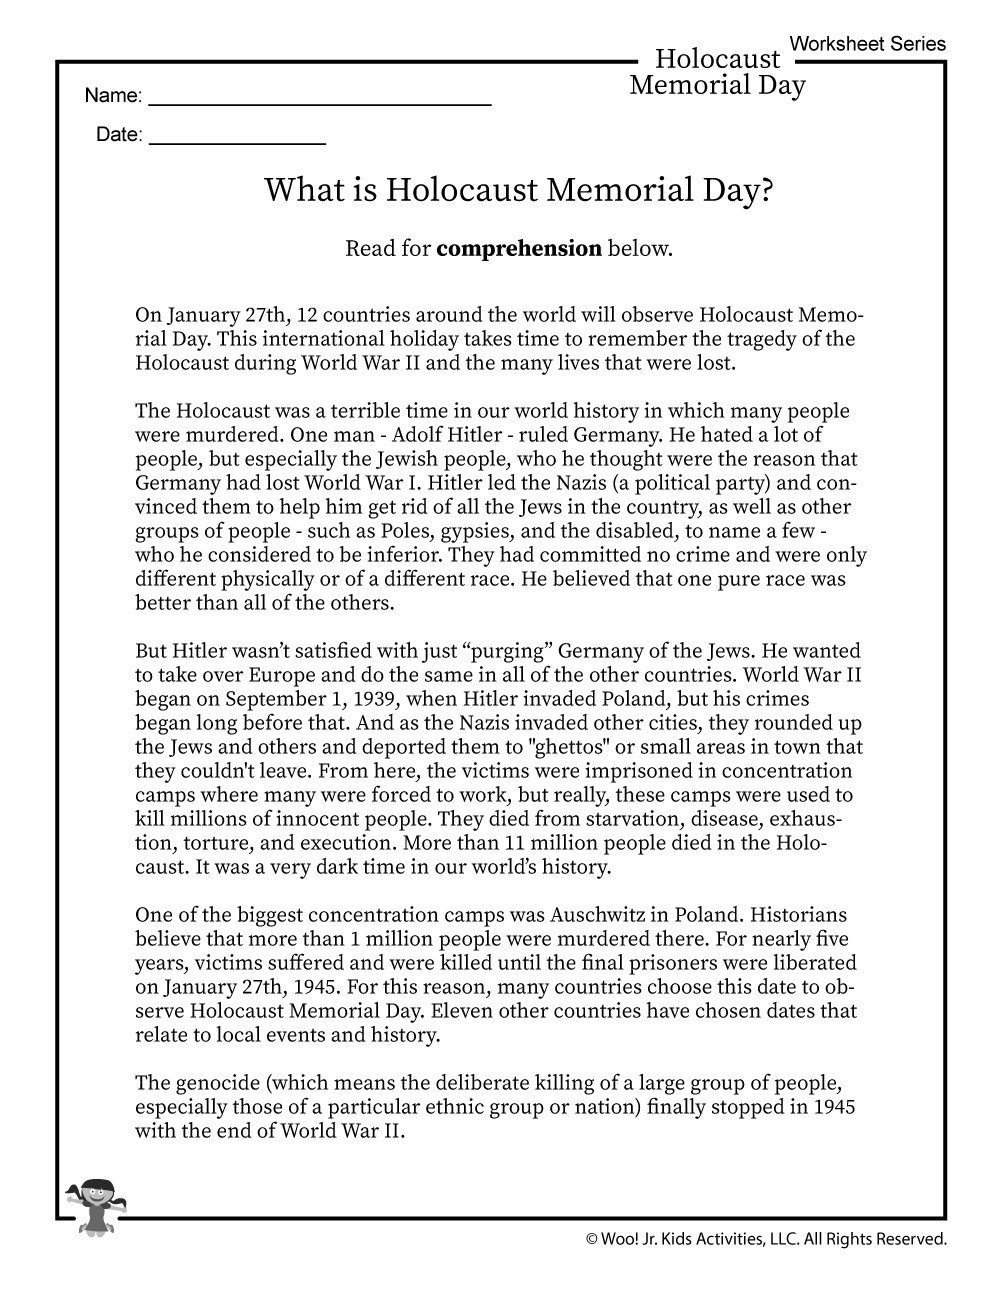 Memorial Day Worksheets for Kids What is Holocaust Memorial Day